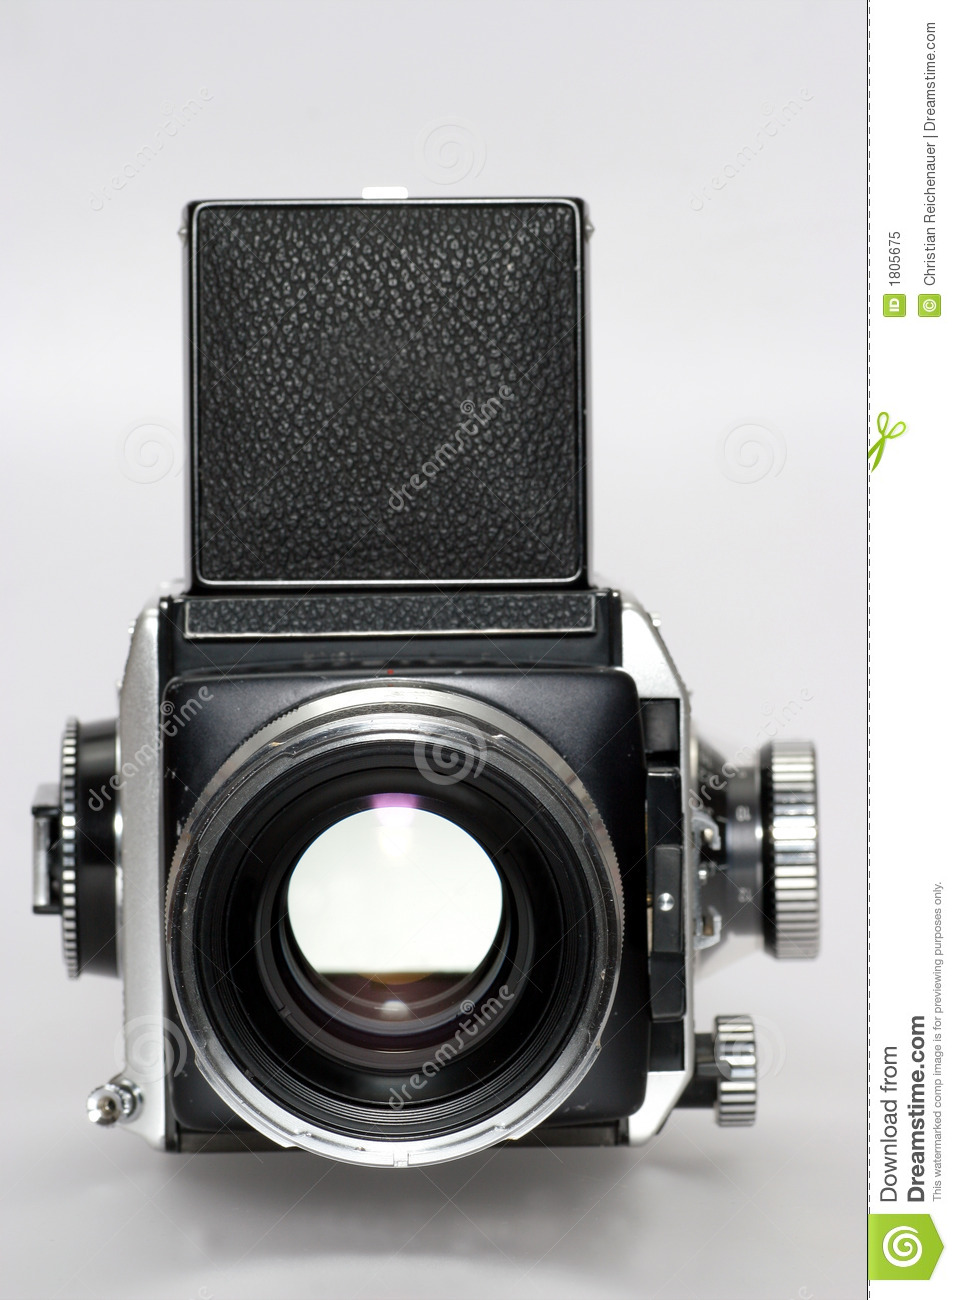 Medium Format Camera With Lens Frontview Royalty Free Stock Photo.